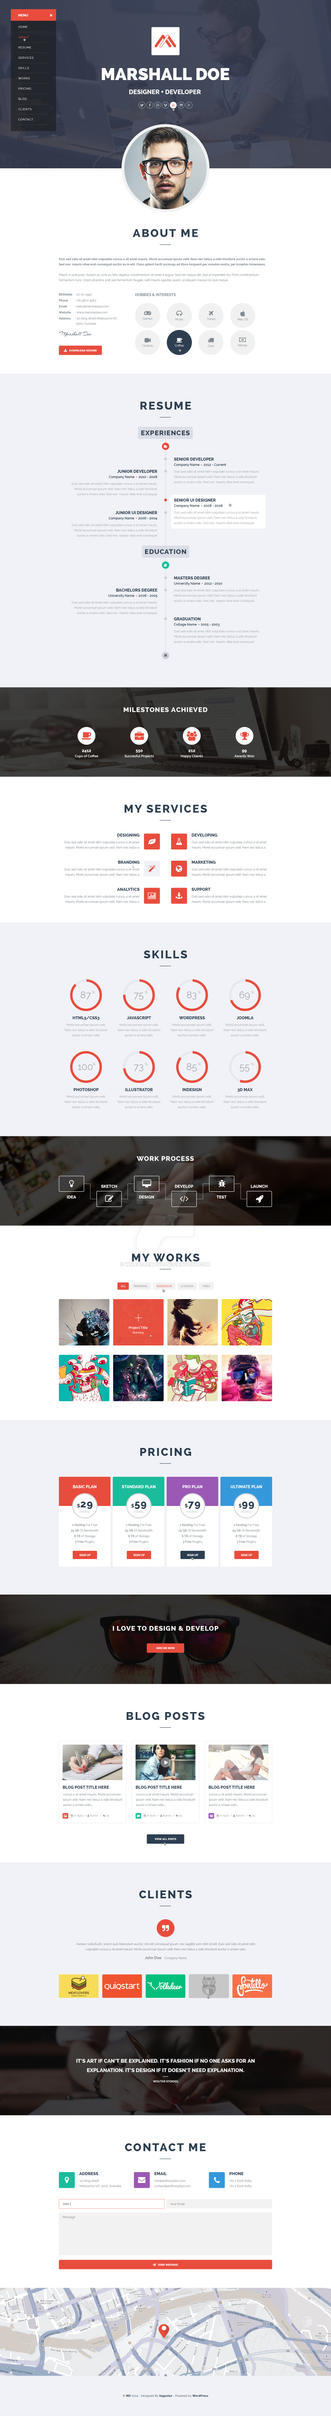 MD - Resume PSD Template by wnabcreative